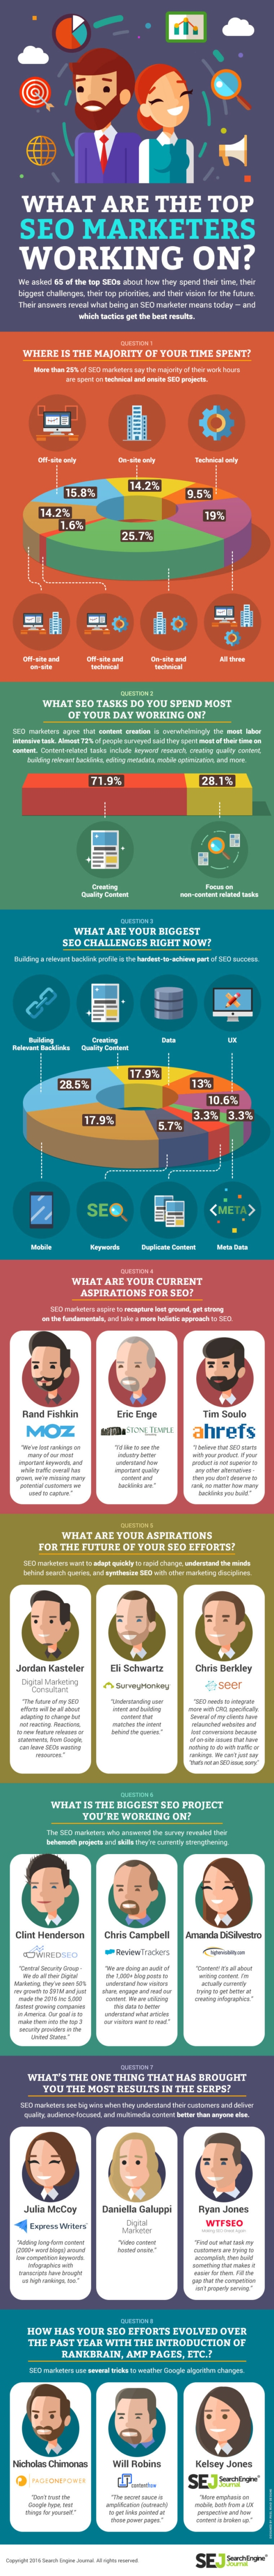 how-the-worlds-seo-experts-get-websites-on-the-first-page-of-google